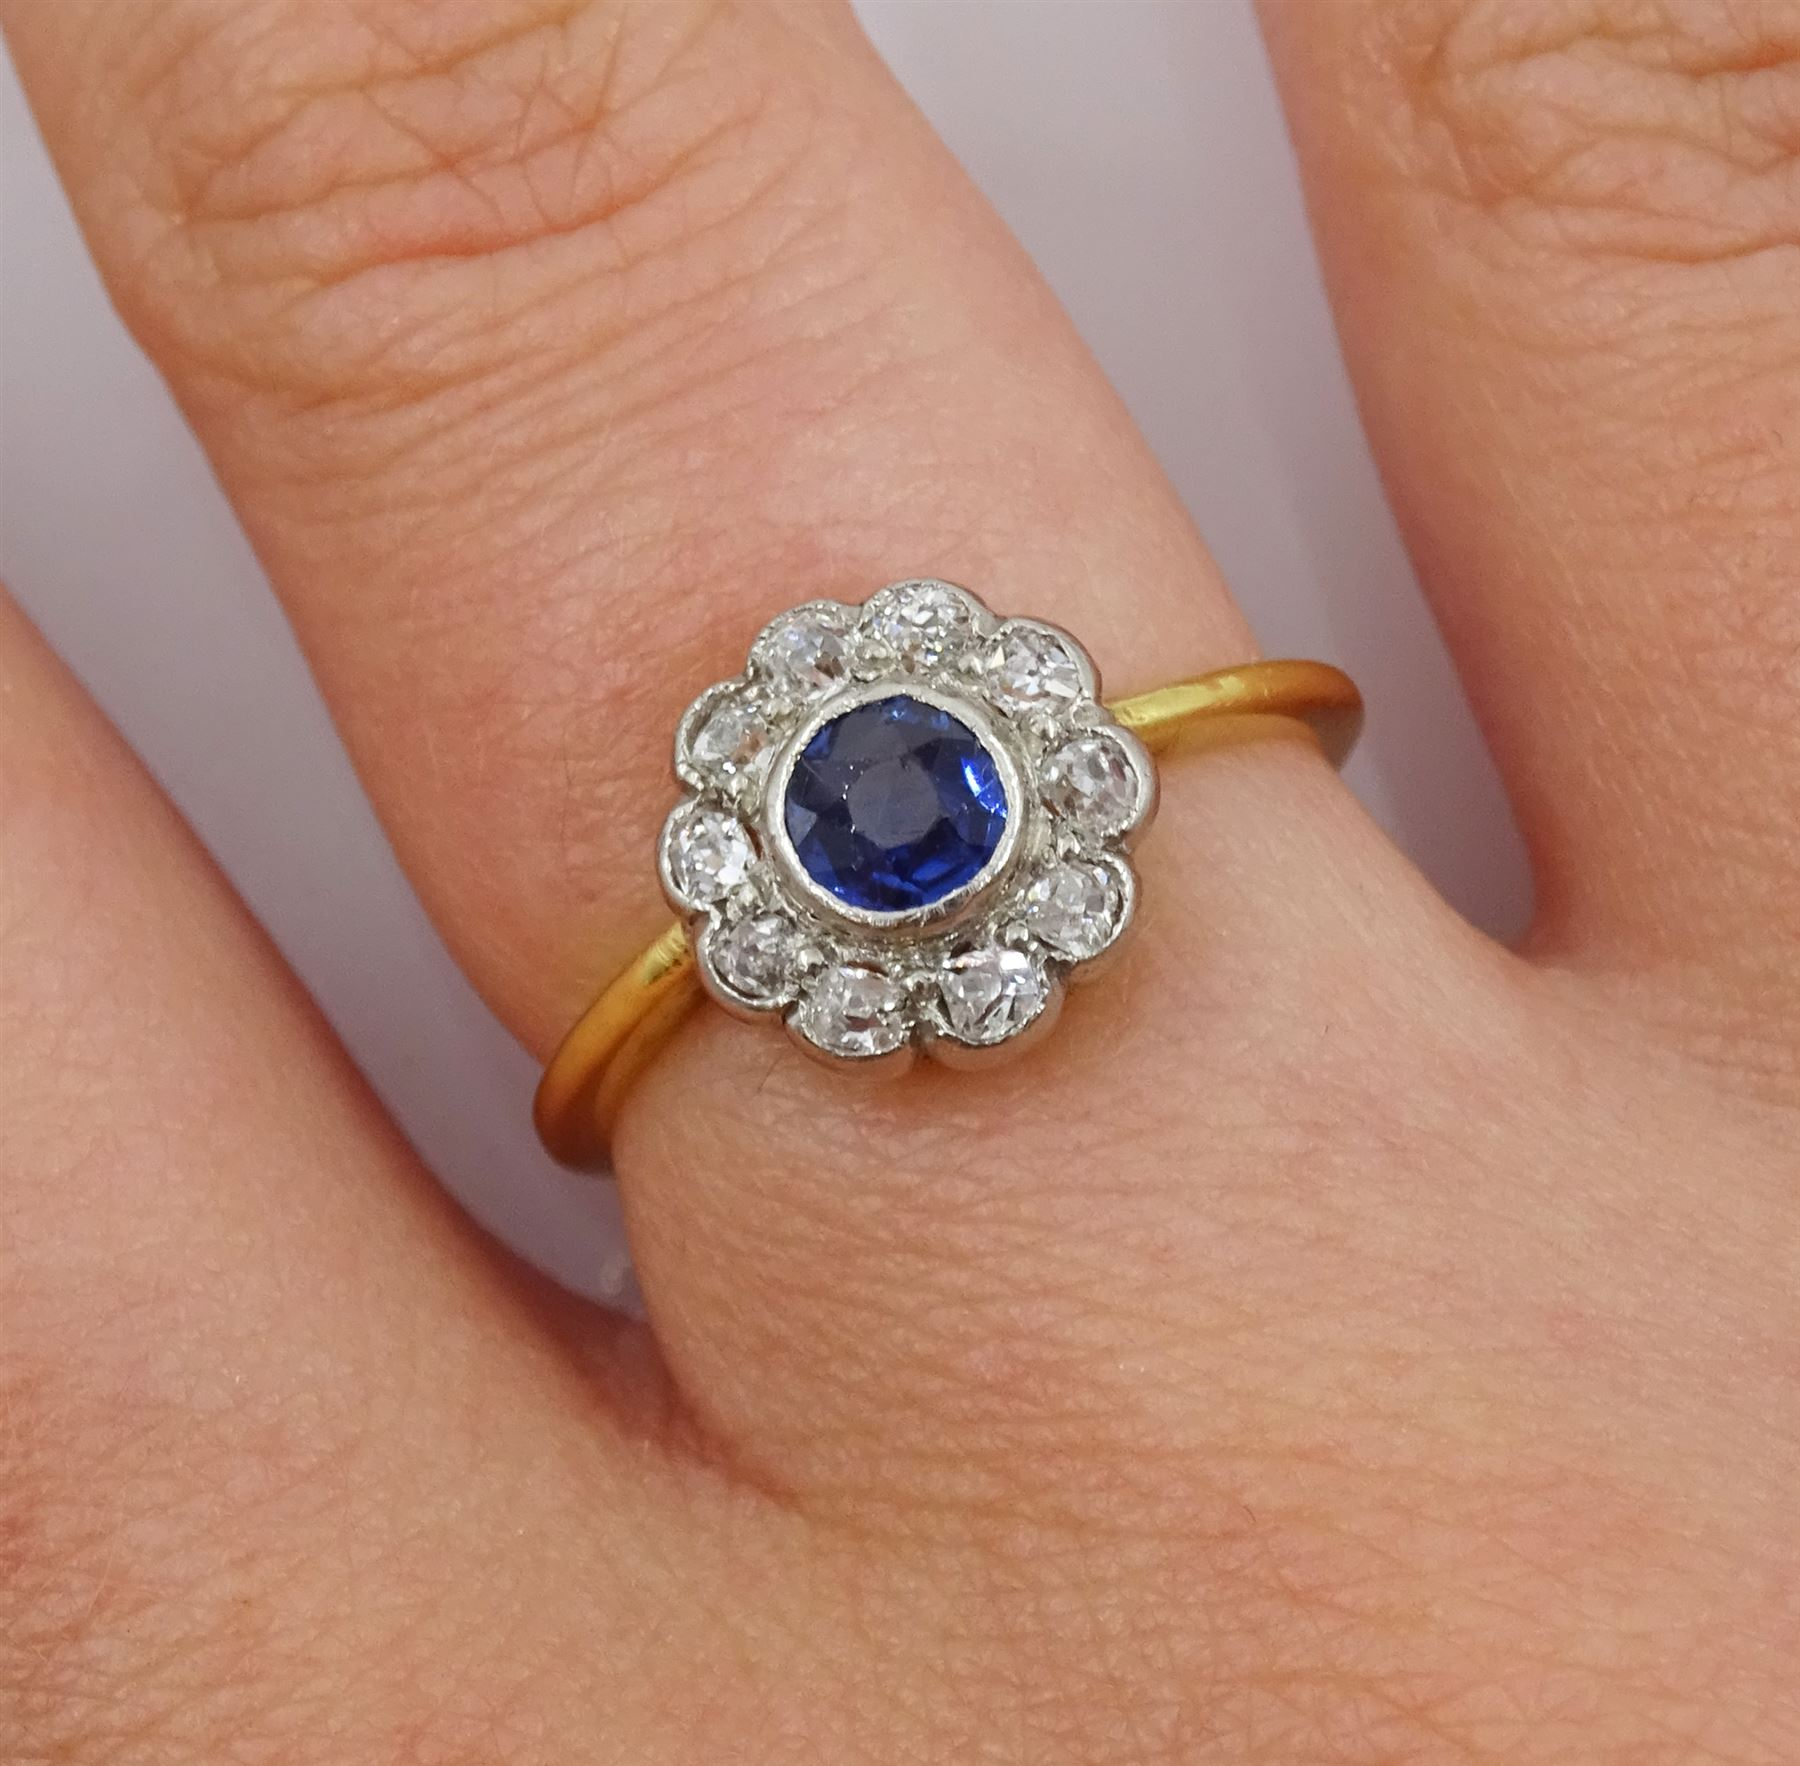 18ct gold round sapphire and old cut diamond cluster ring - Image 2 of 4